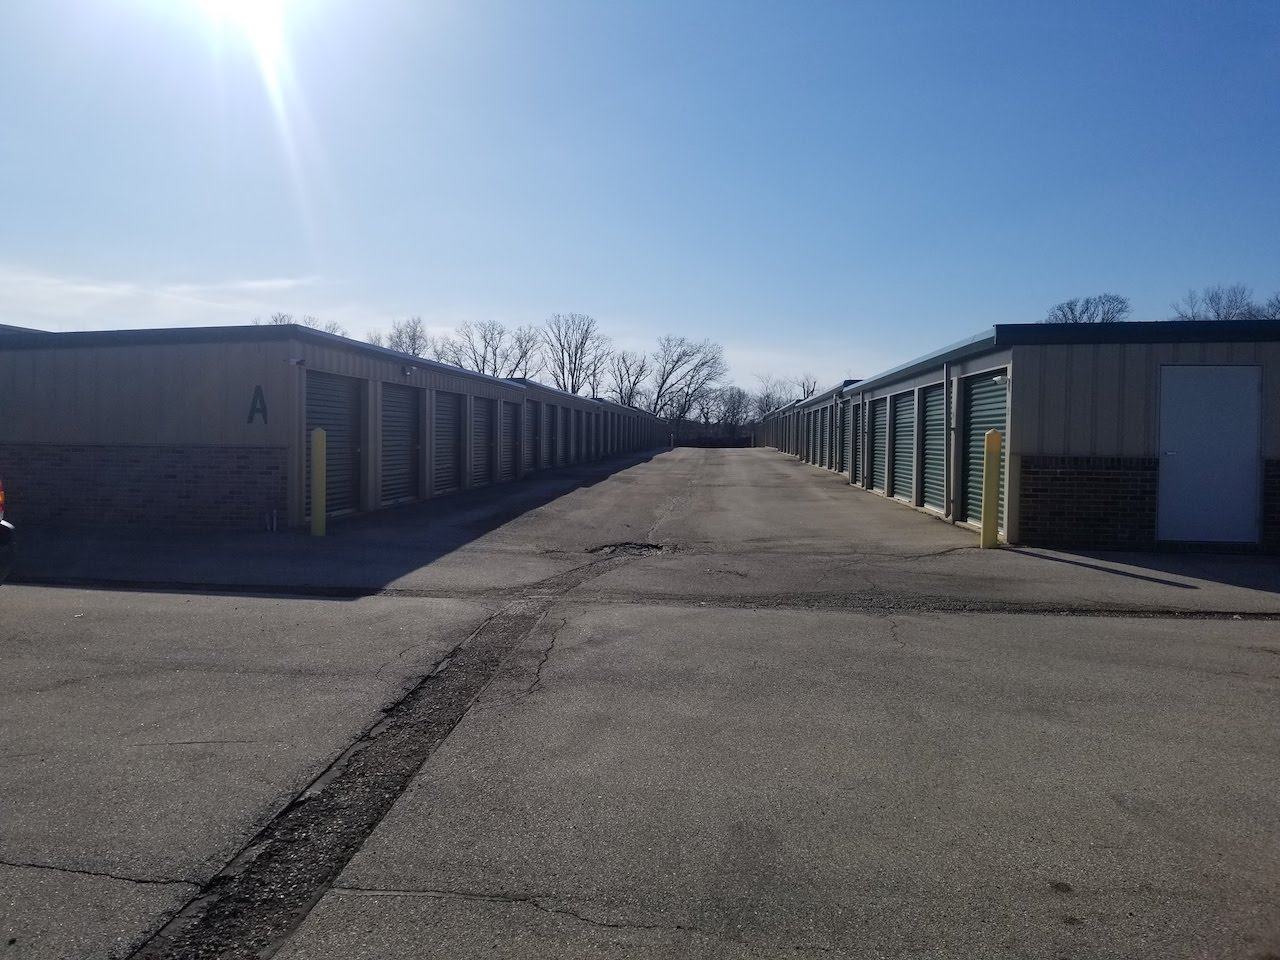 View down a row of units